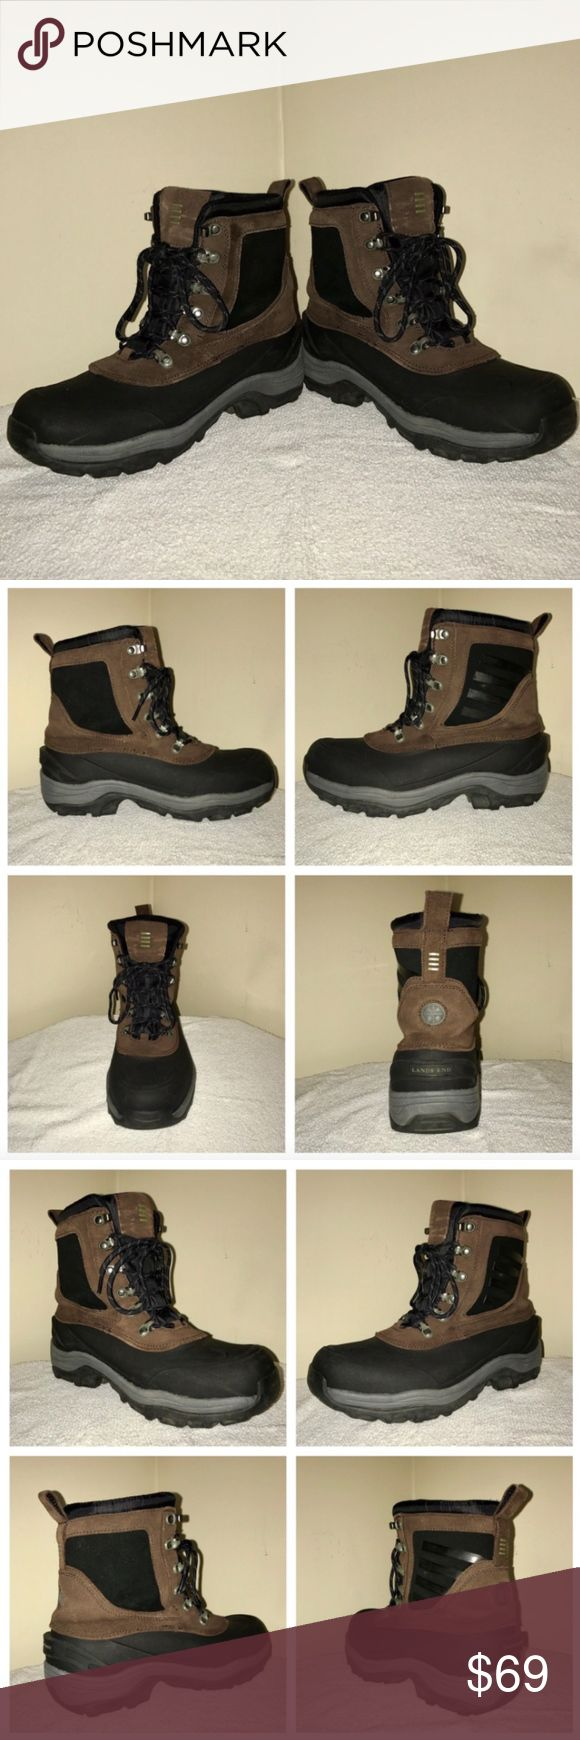 Lands End Women's Waterproof Hiking Boots 9 Narrow ALL OFFERS CONSIDERED!  Description  Size: 9 Narrow Color: Brown Tag Measurements- 9 B (Narrow) Condition: Excellent  Flaws: Shows little wear. Lots of tread left. I do not have the original box. Lands' End Shoes Winter & Rain Boots